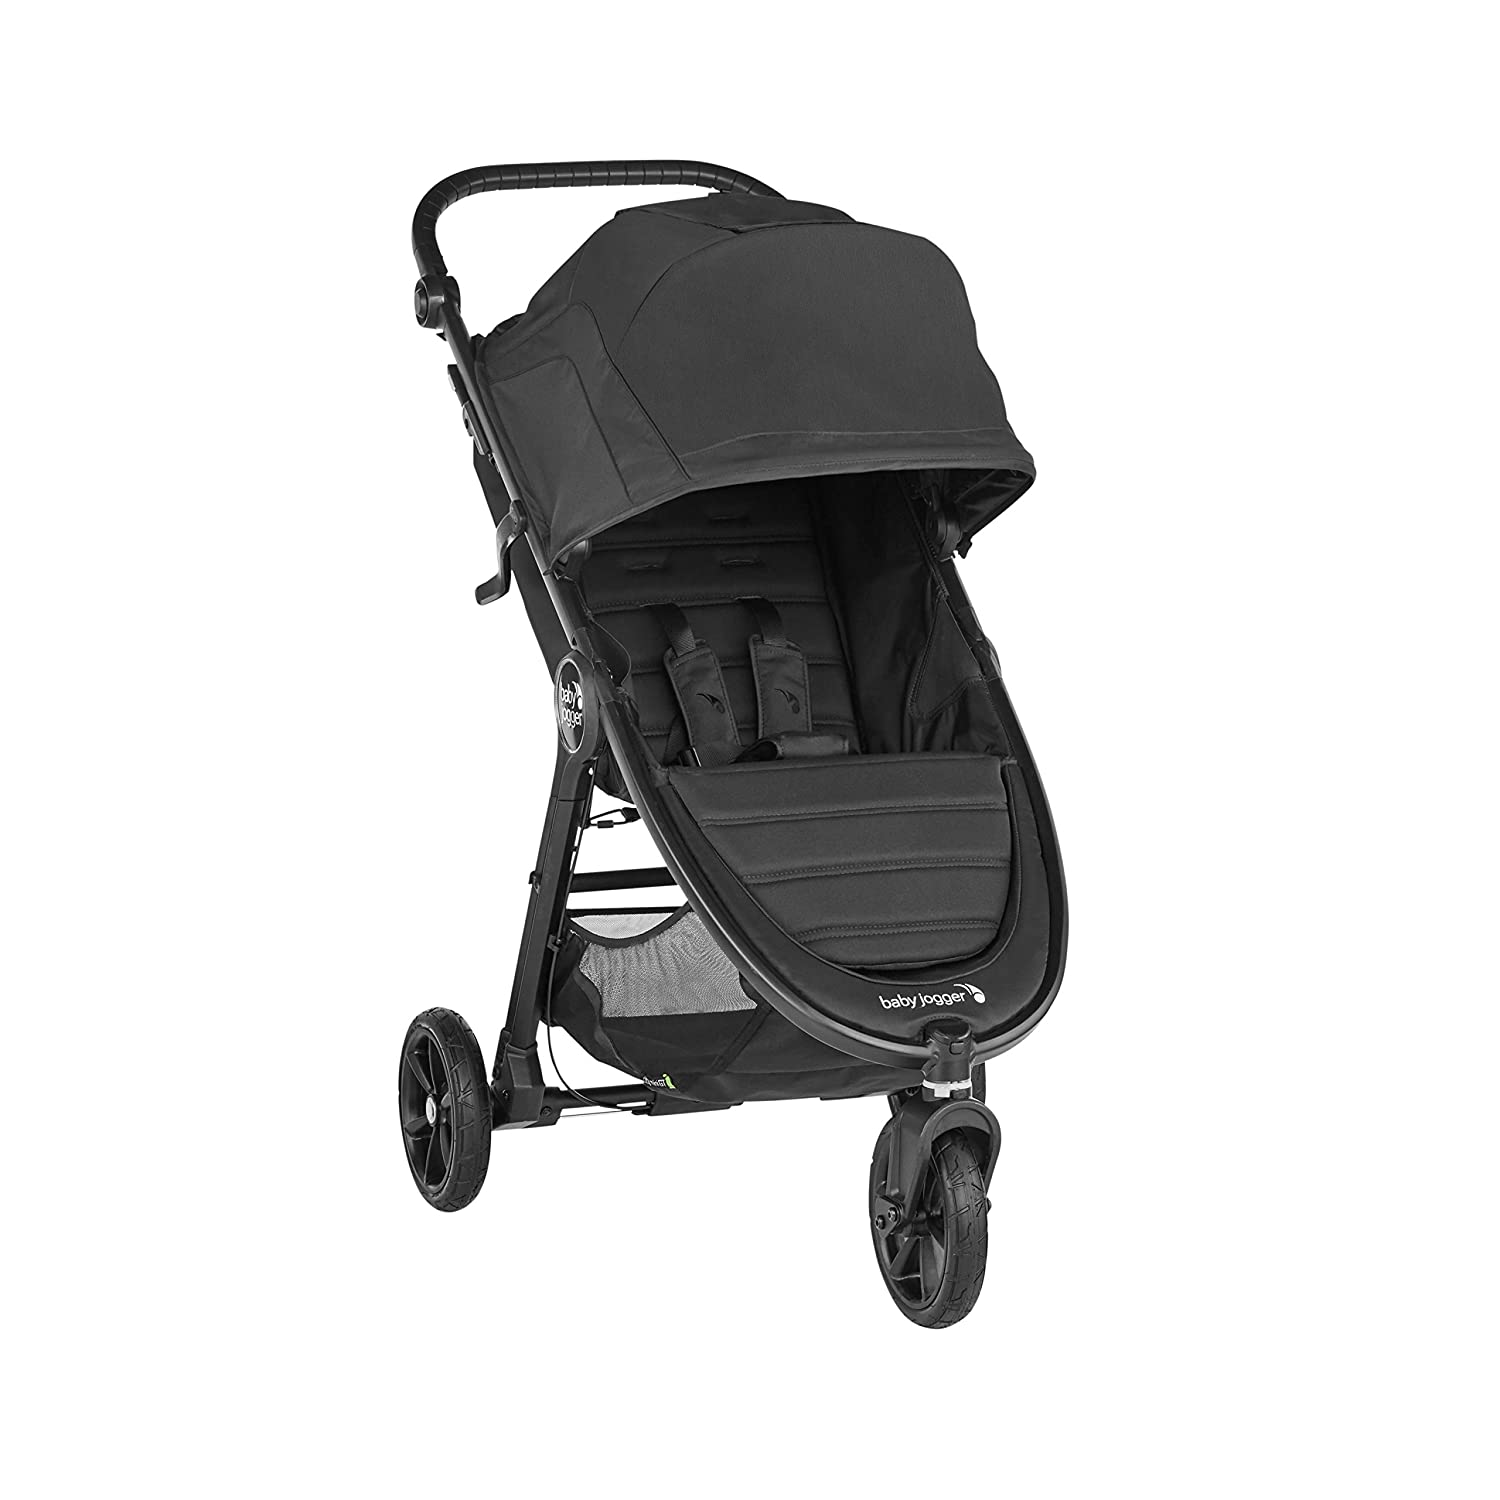 Baby Jogger City Mini GT2 Stroller - 2019 | Baby Stroller with All-Terrain Tires | Quick Fold Lightweight Stroller